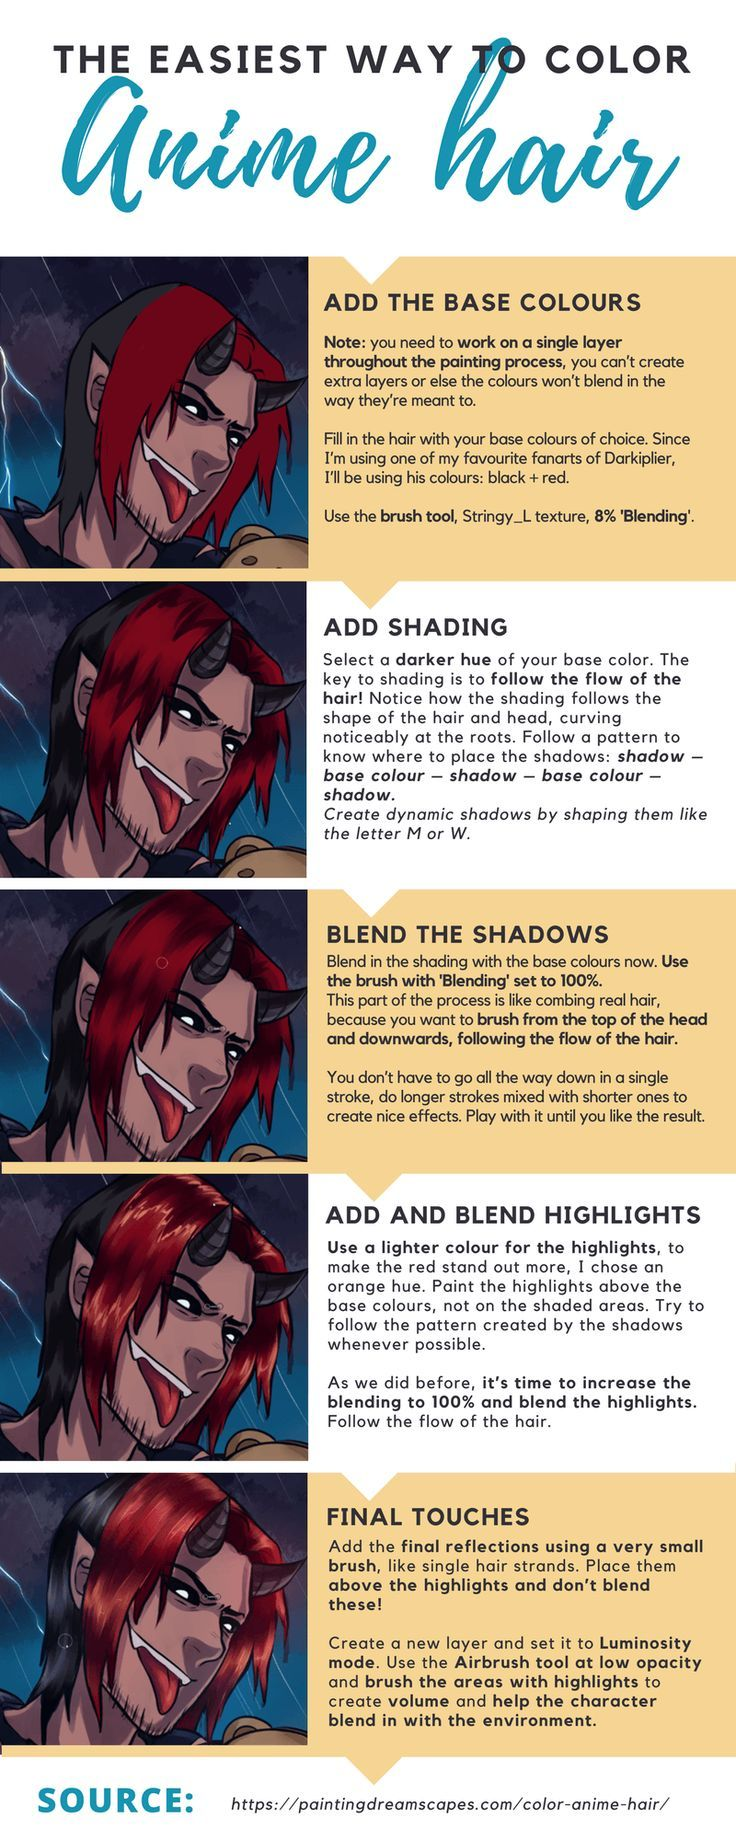 How To Color Anime Hair In Sai For Awesome Easy Quick Results Painting Dreamscapes How To Draw Anime Hair Anime Hair Easy Drawings